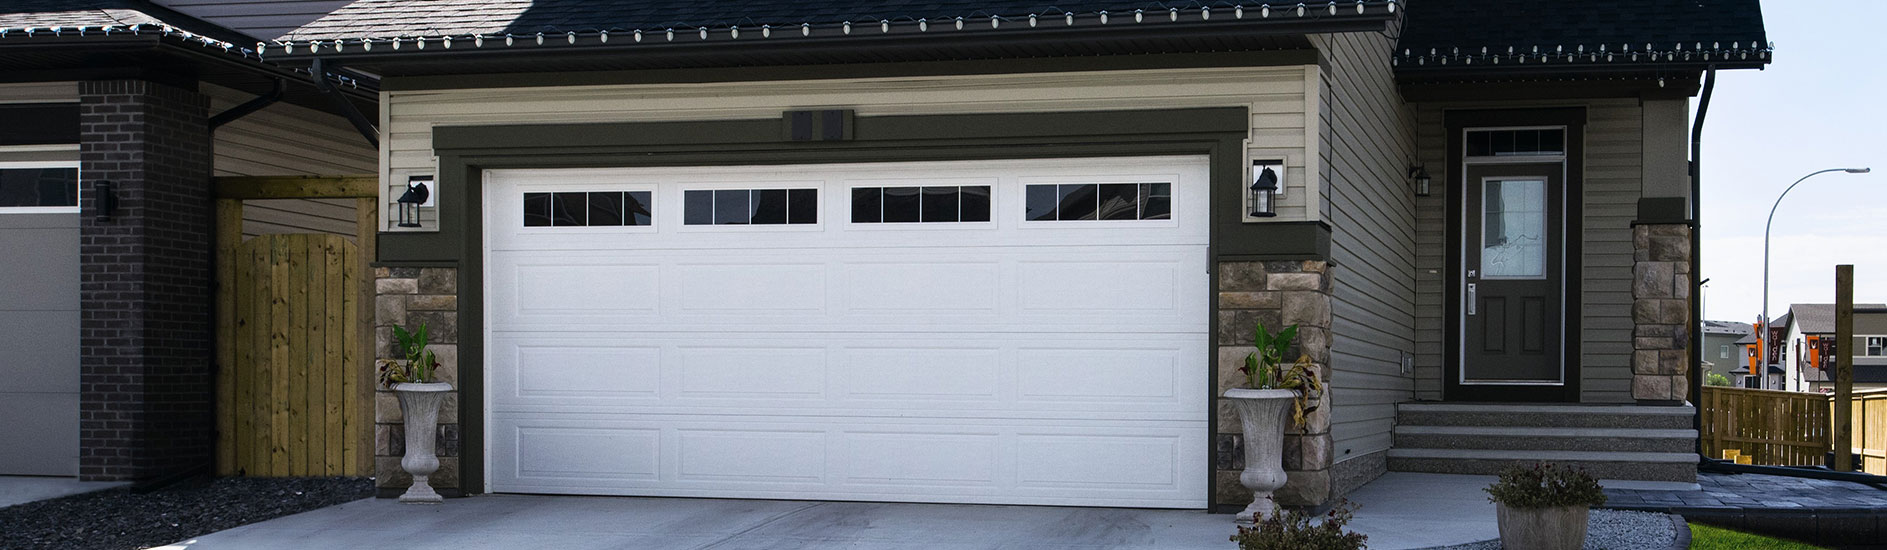 Contact us garage door repairs atherton tablelands for 16x7 garage door with windows